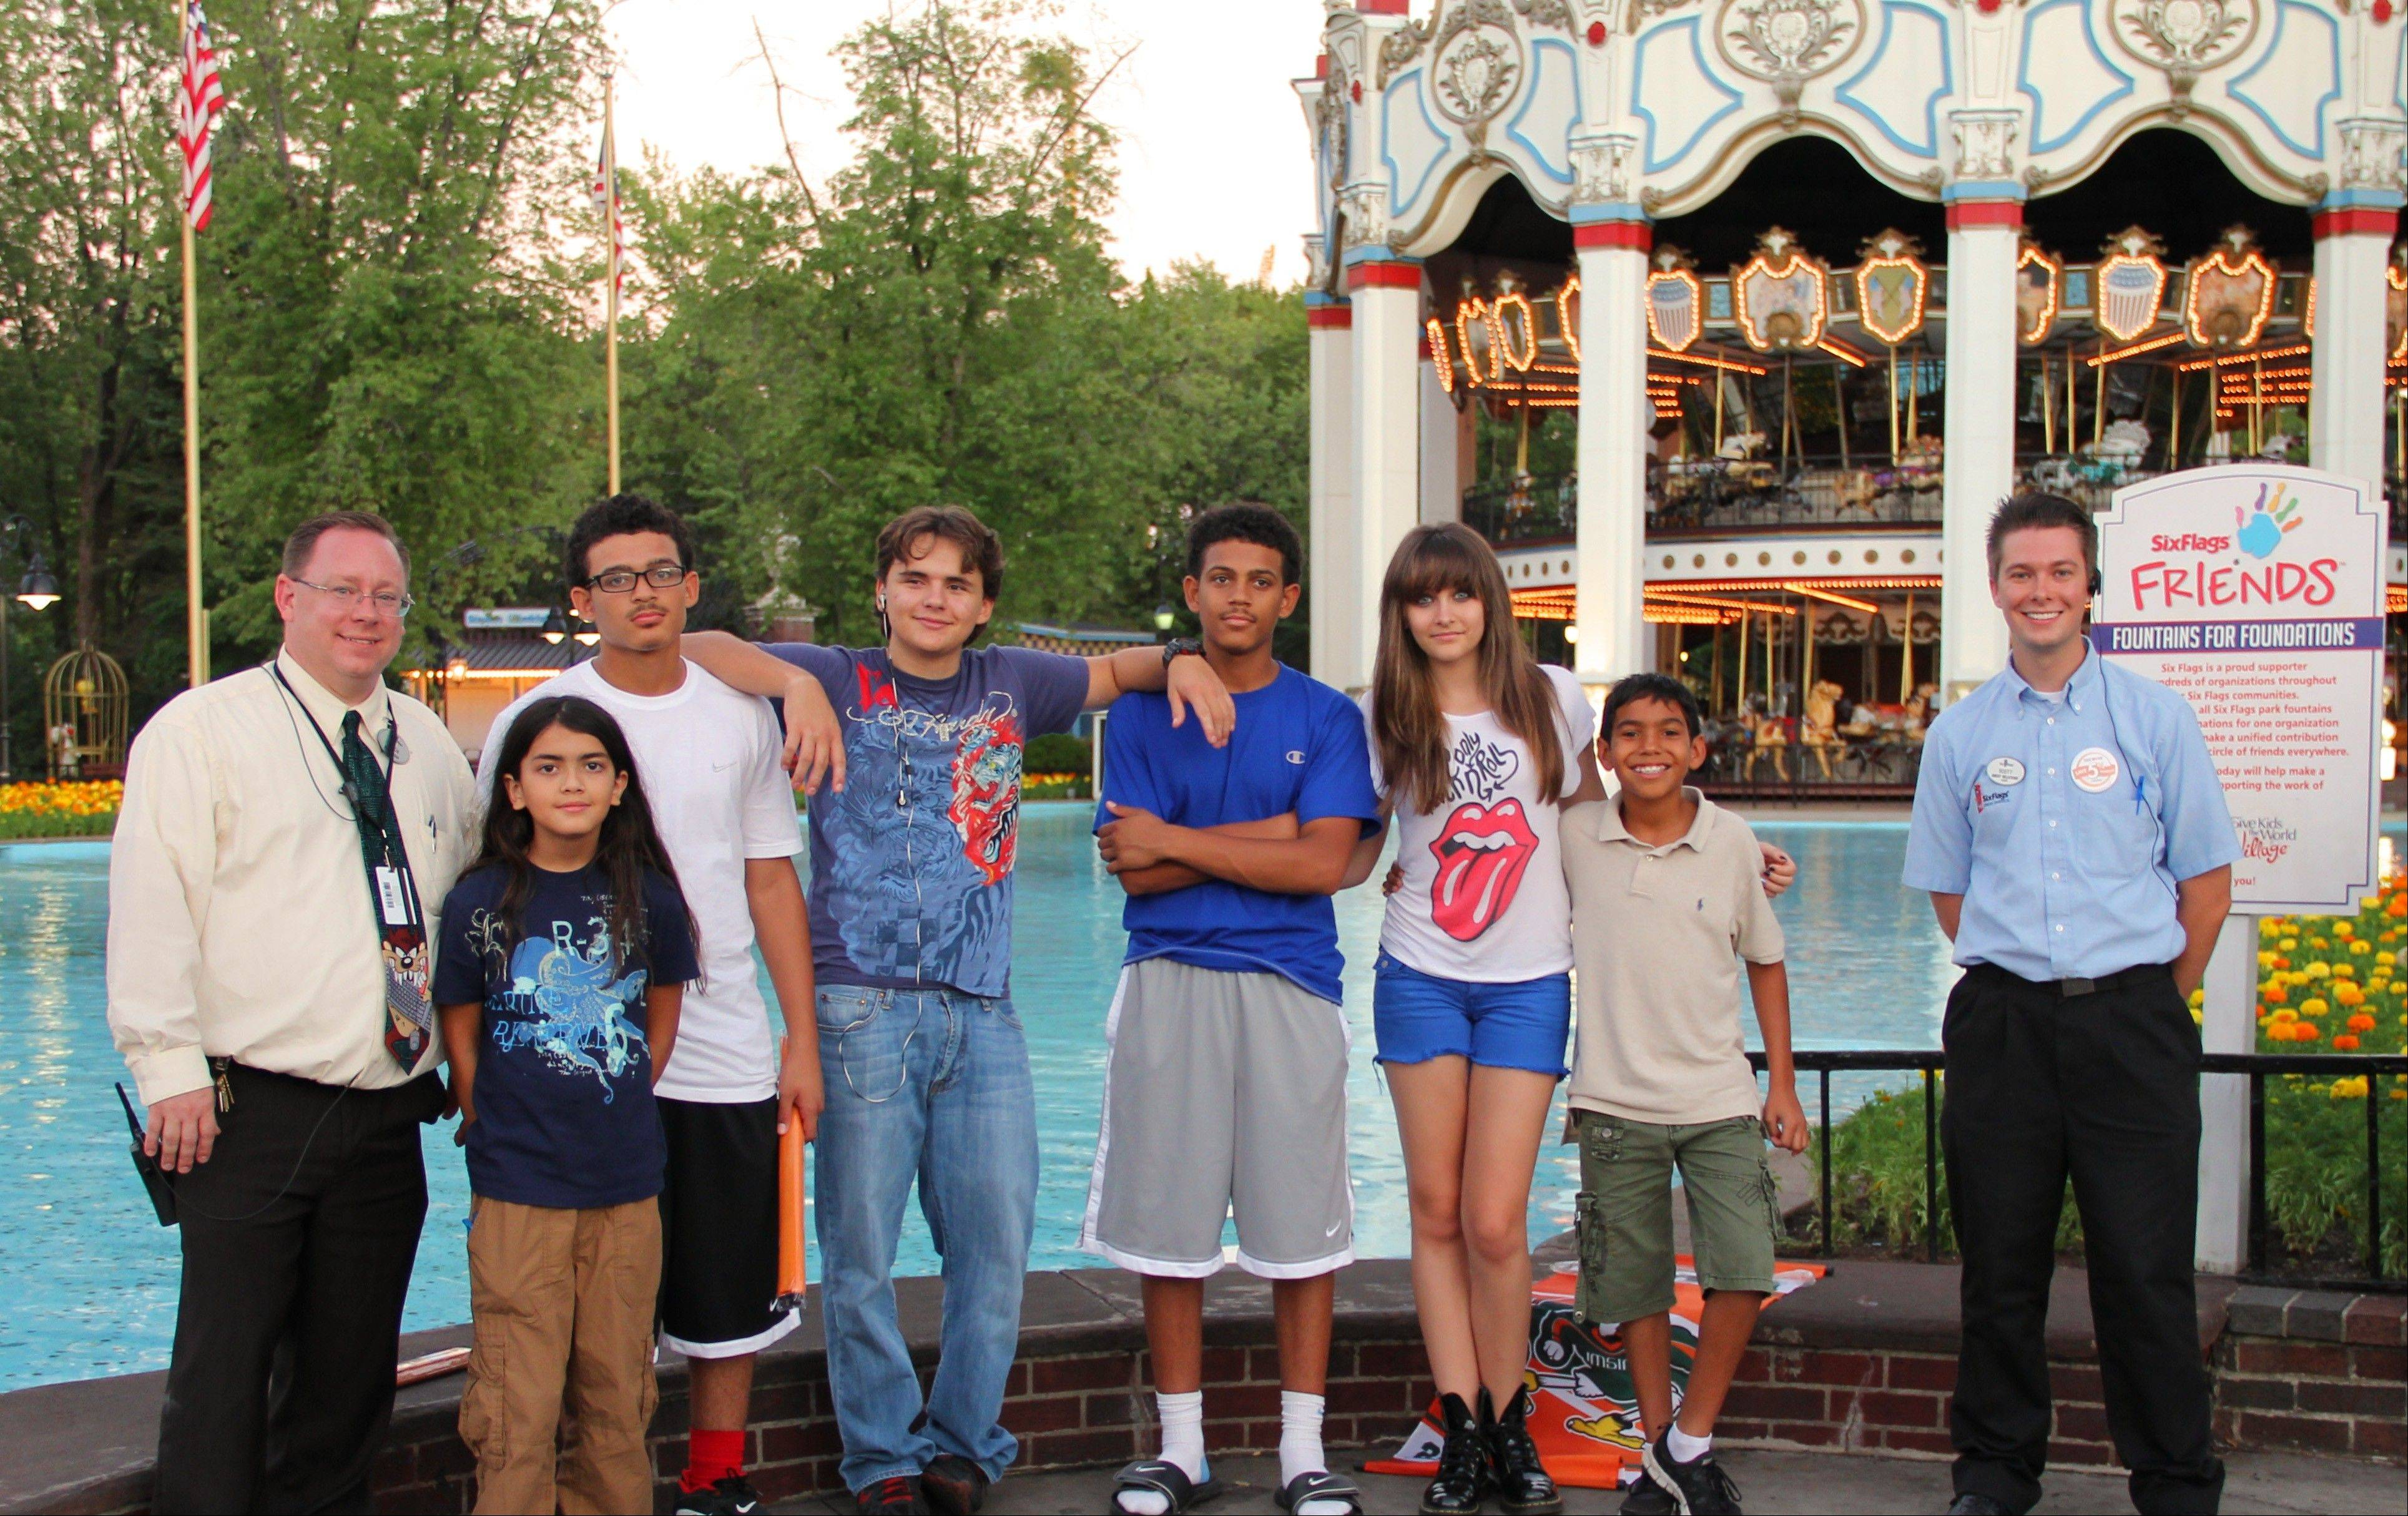 Michael Jackson�s children � Blanket, 10, second from left; Prince, 15, fourth from left; and Paris, 14, third from right � visited Six Flags Great America in Gurnee on Monday.